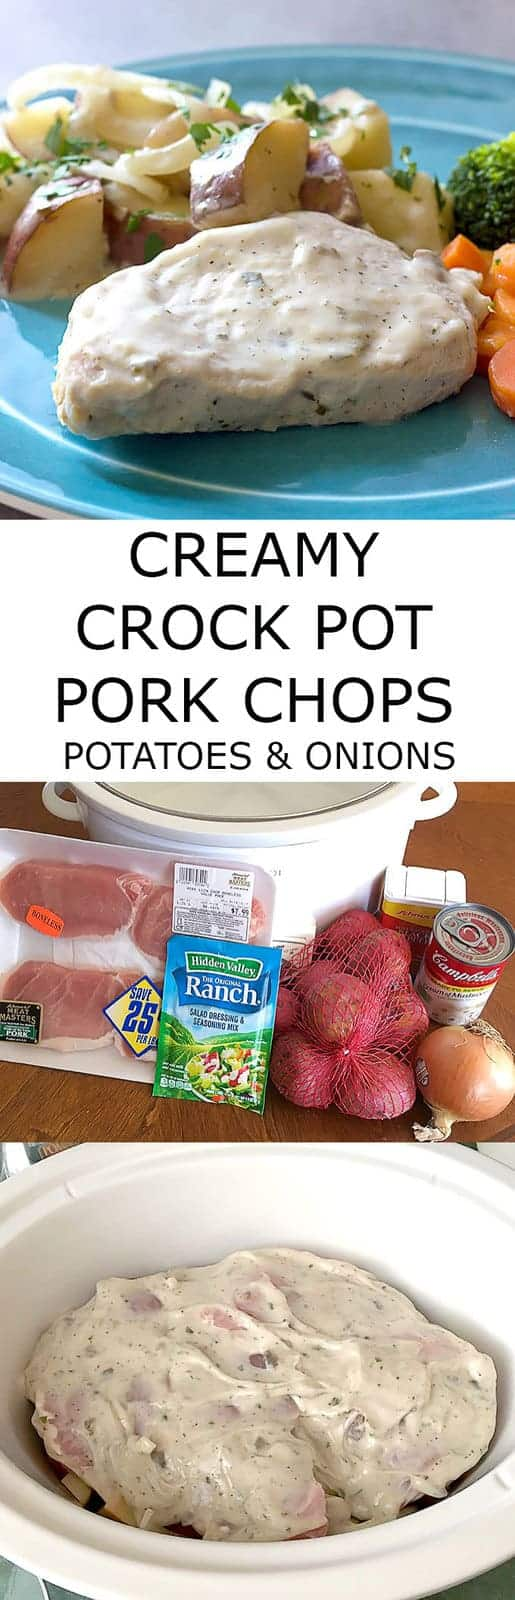 Creamy Crock Pot Pork Chops Potatoes & Onions is a comforting delicious dinner that only takes a few ingredients and a few minutes to prepare.